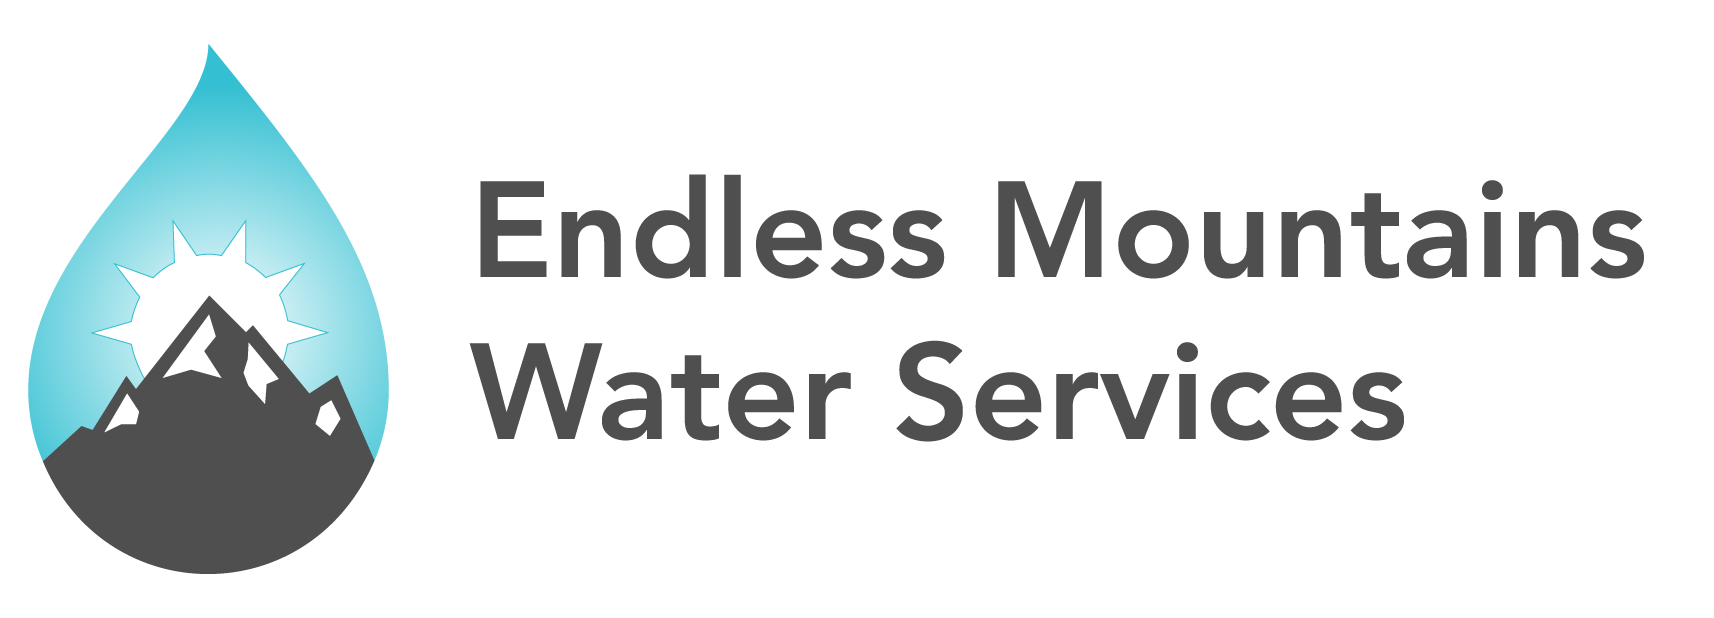 Endless Mountains Water Services